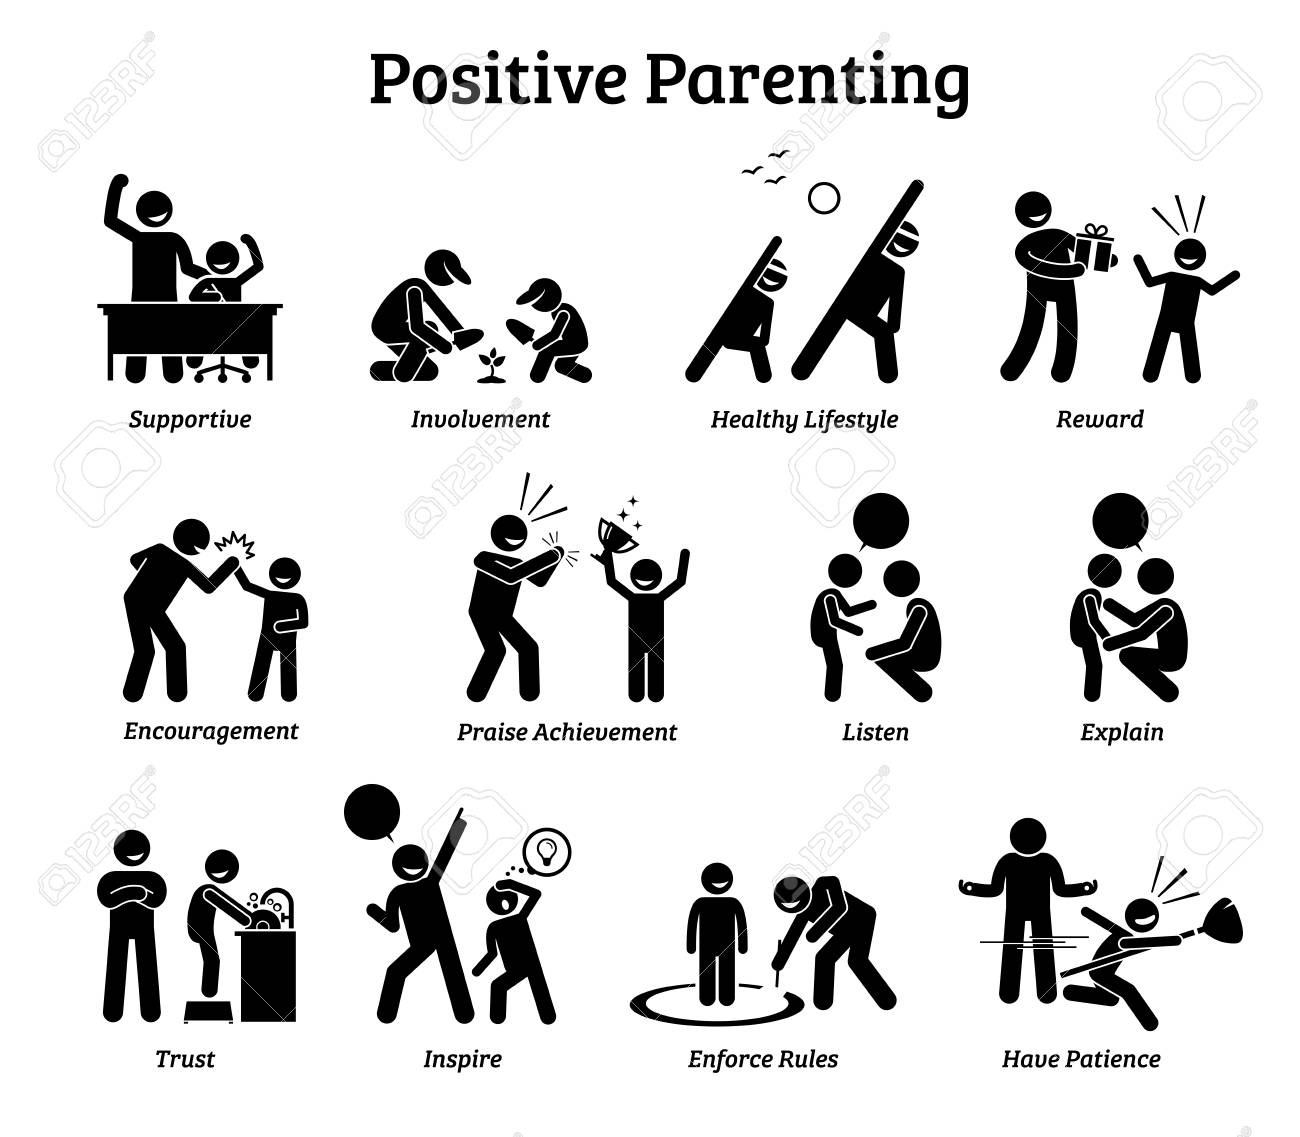 Positive Parenting Child Upbringing Illustrations Depict The Royalty Free Cliparts Vectors And Stock Illustration Image 108467932